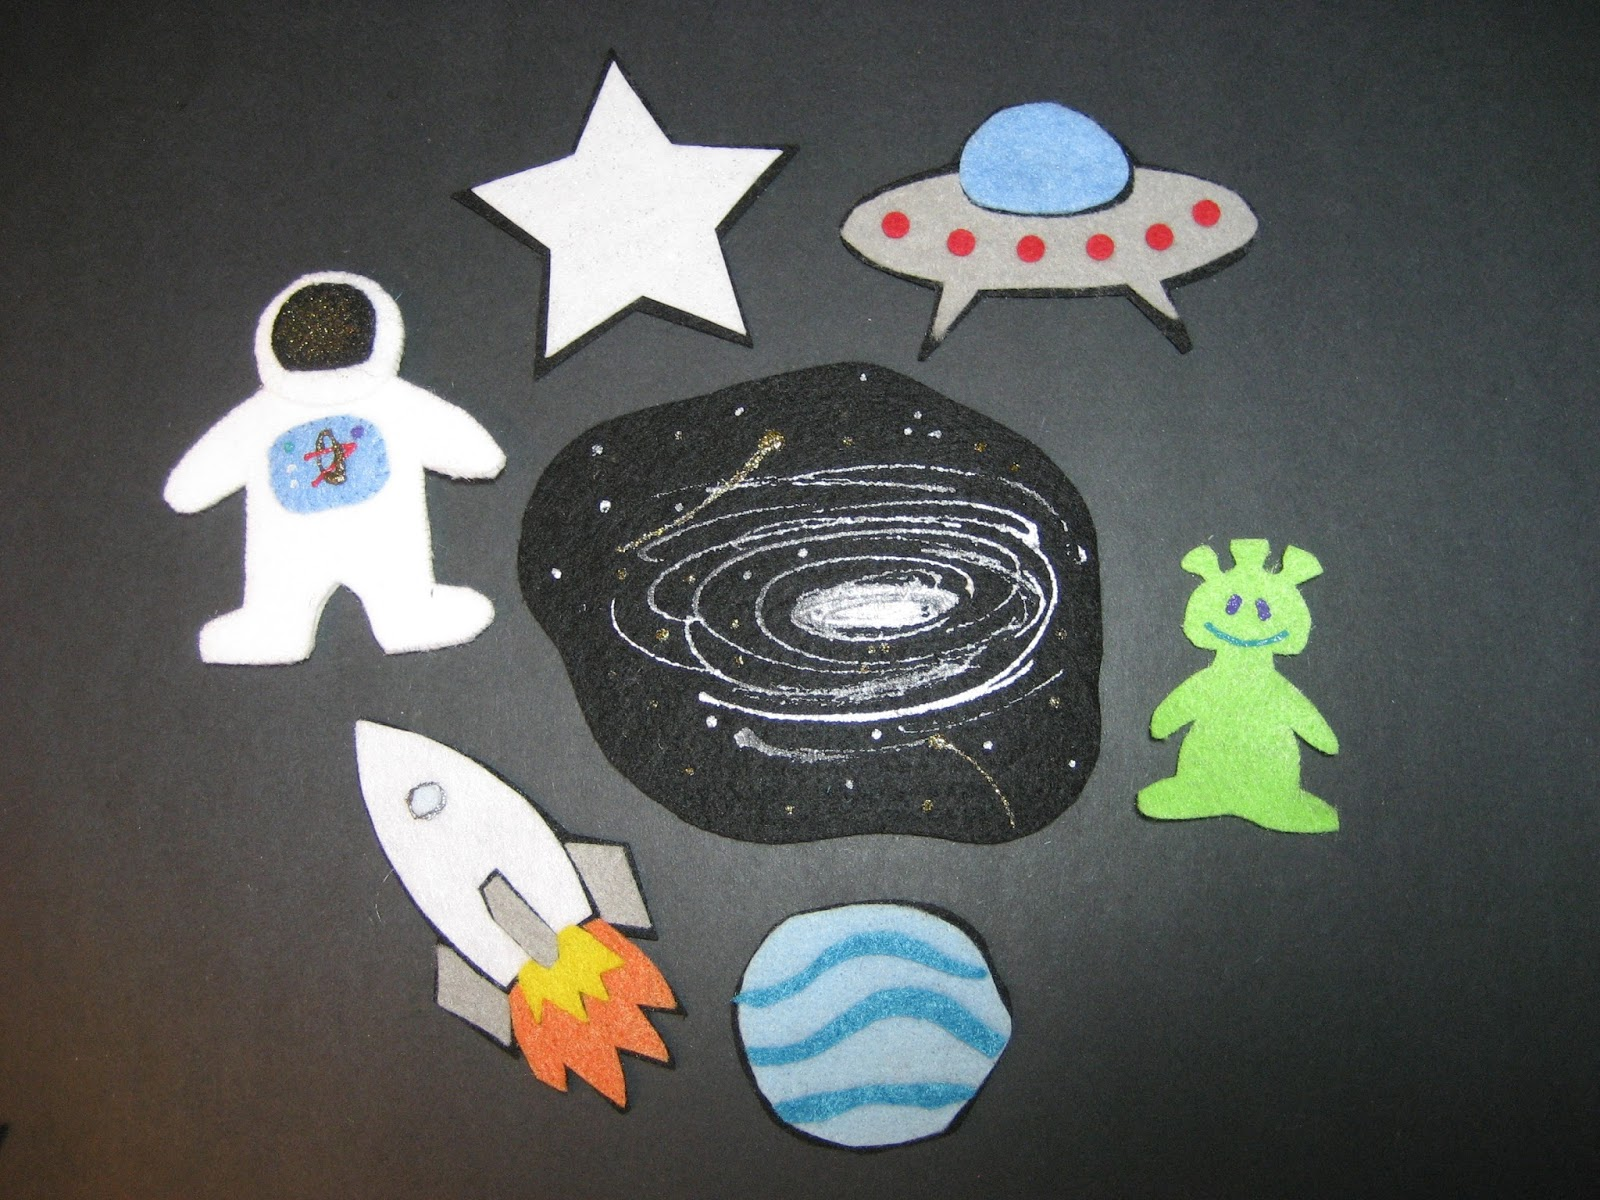 Flannel board fun space the final frontier for Space flannel